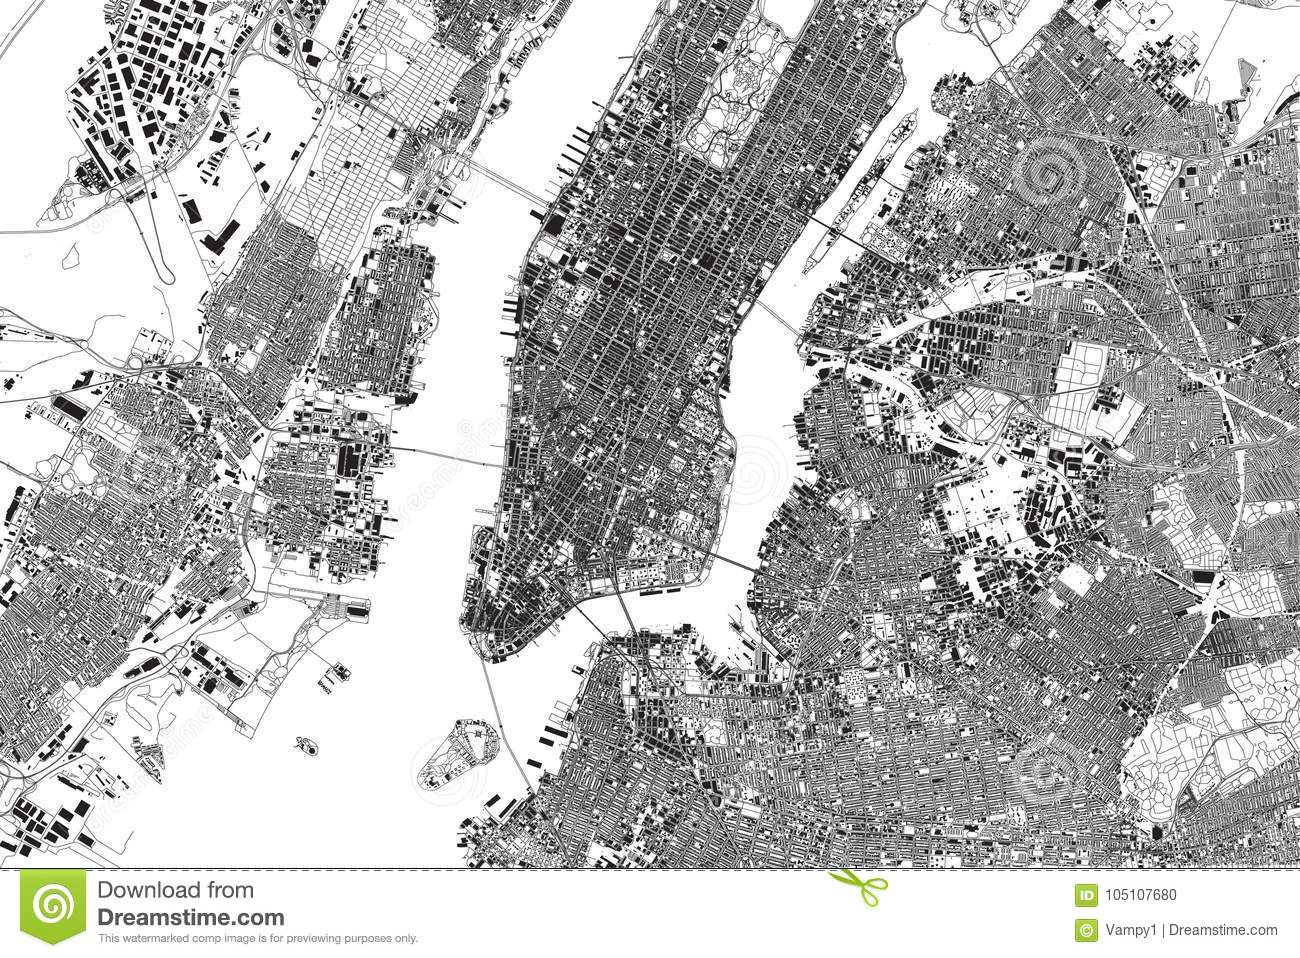 Map Of New York, Satellite View, United States ... Satellite Map Of New York on nighttime satellite map new york, fjords of new york, satellite maps of my house, driving map of new york, traffic map of new york, relief map of new york, statistics of new york, street map of new york, topo map of new york, physical map of new york, road map of new york, satellite map new york state, virtual tour of new york, world map of new york, google map of new york, political map of new york, news of new york, satellite view of malden ny, green map of new york, ariel map of new york,